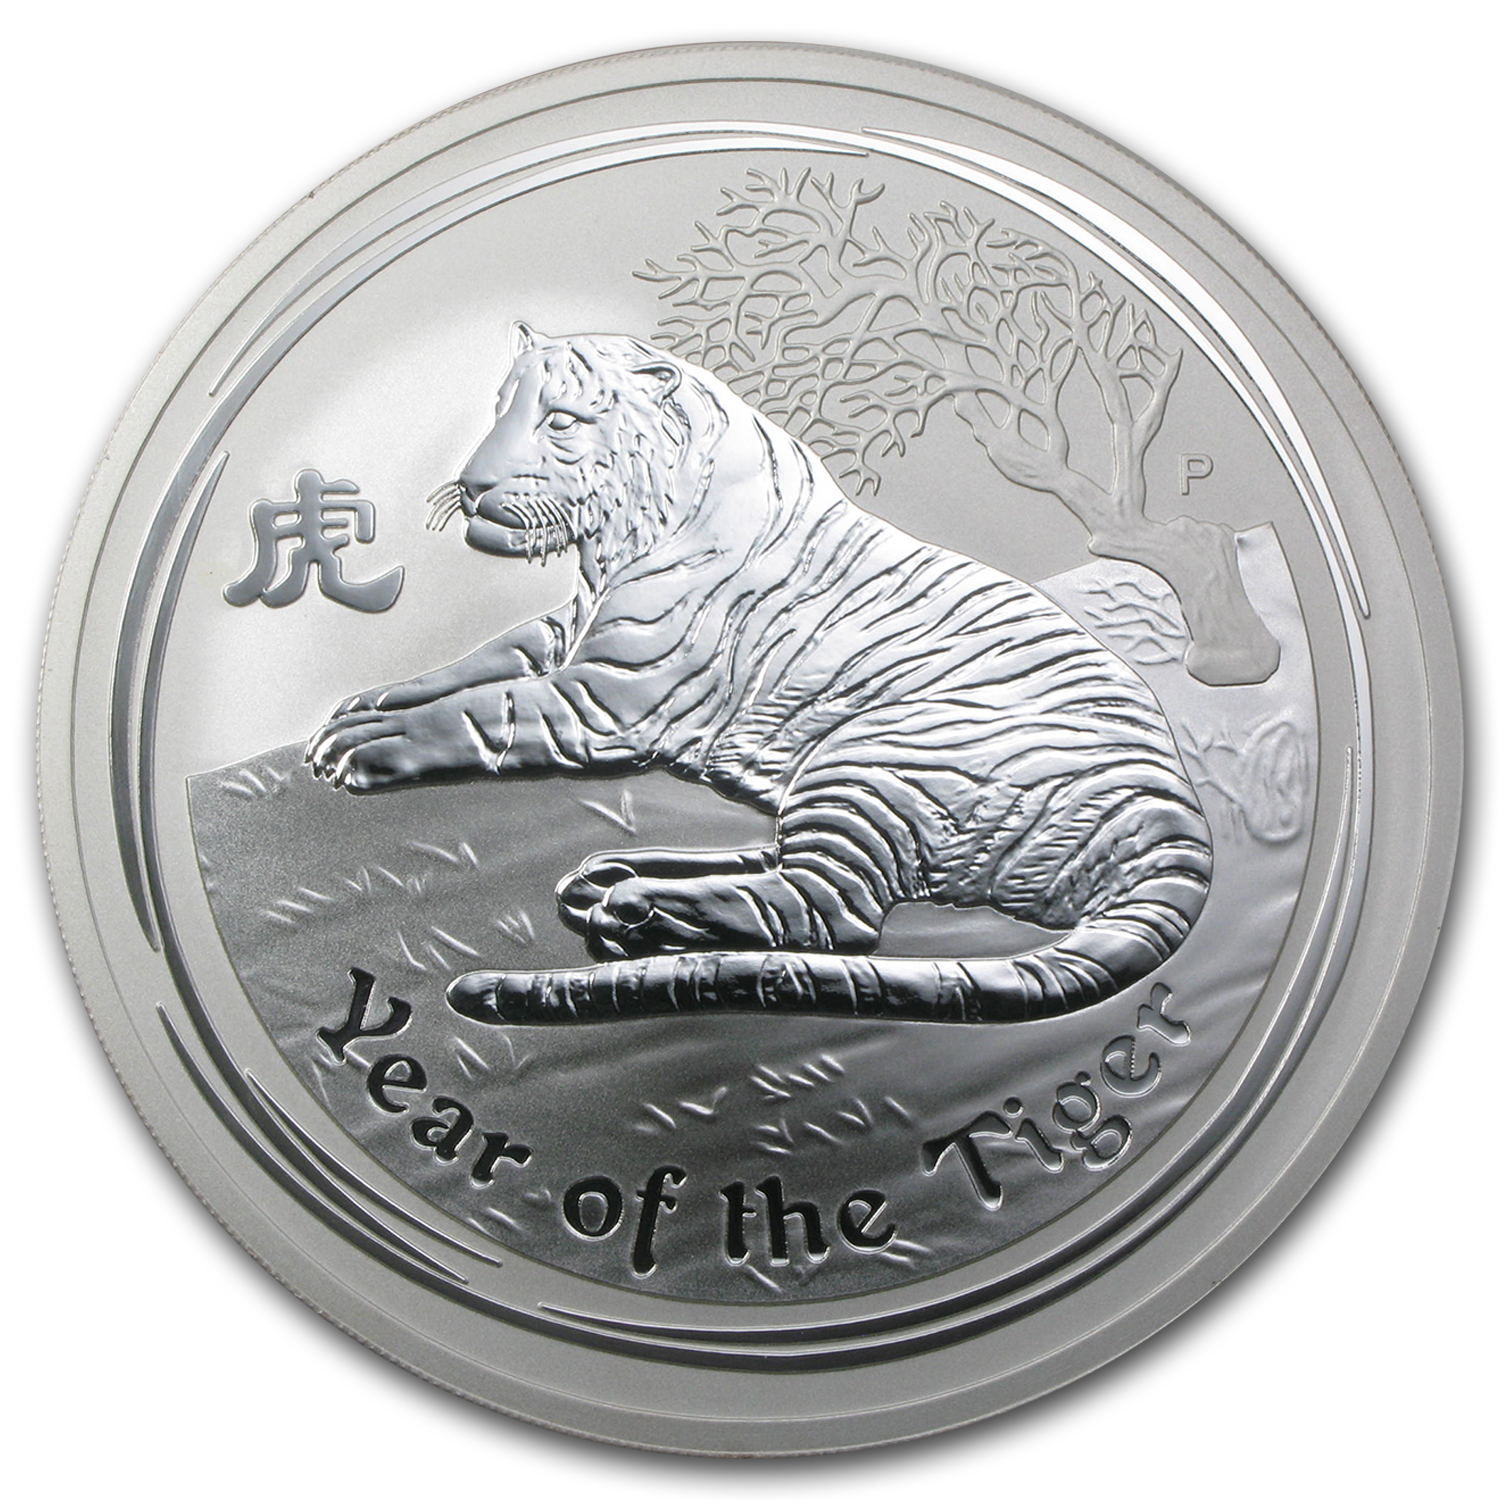 2010 10 oz Silver Australian Year of the Tiger Coin (Series II)